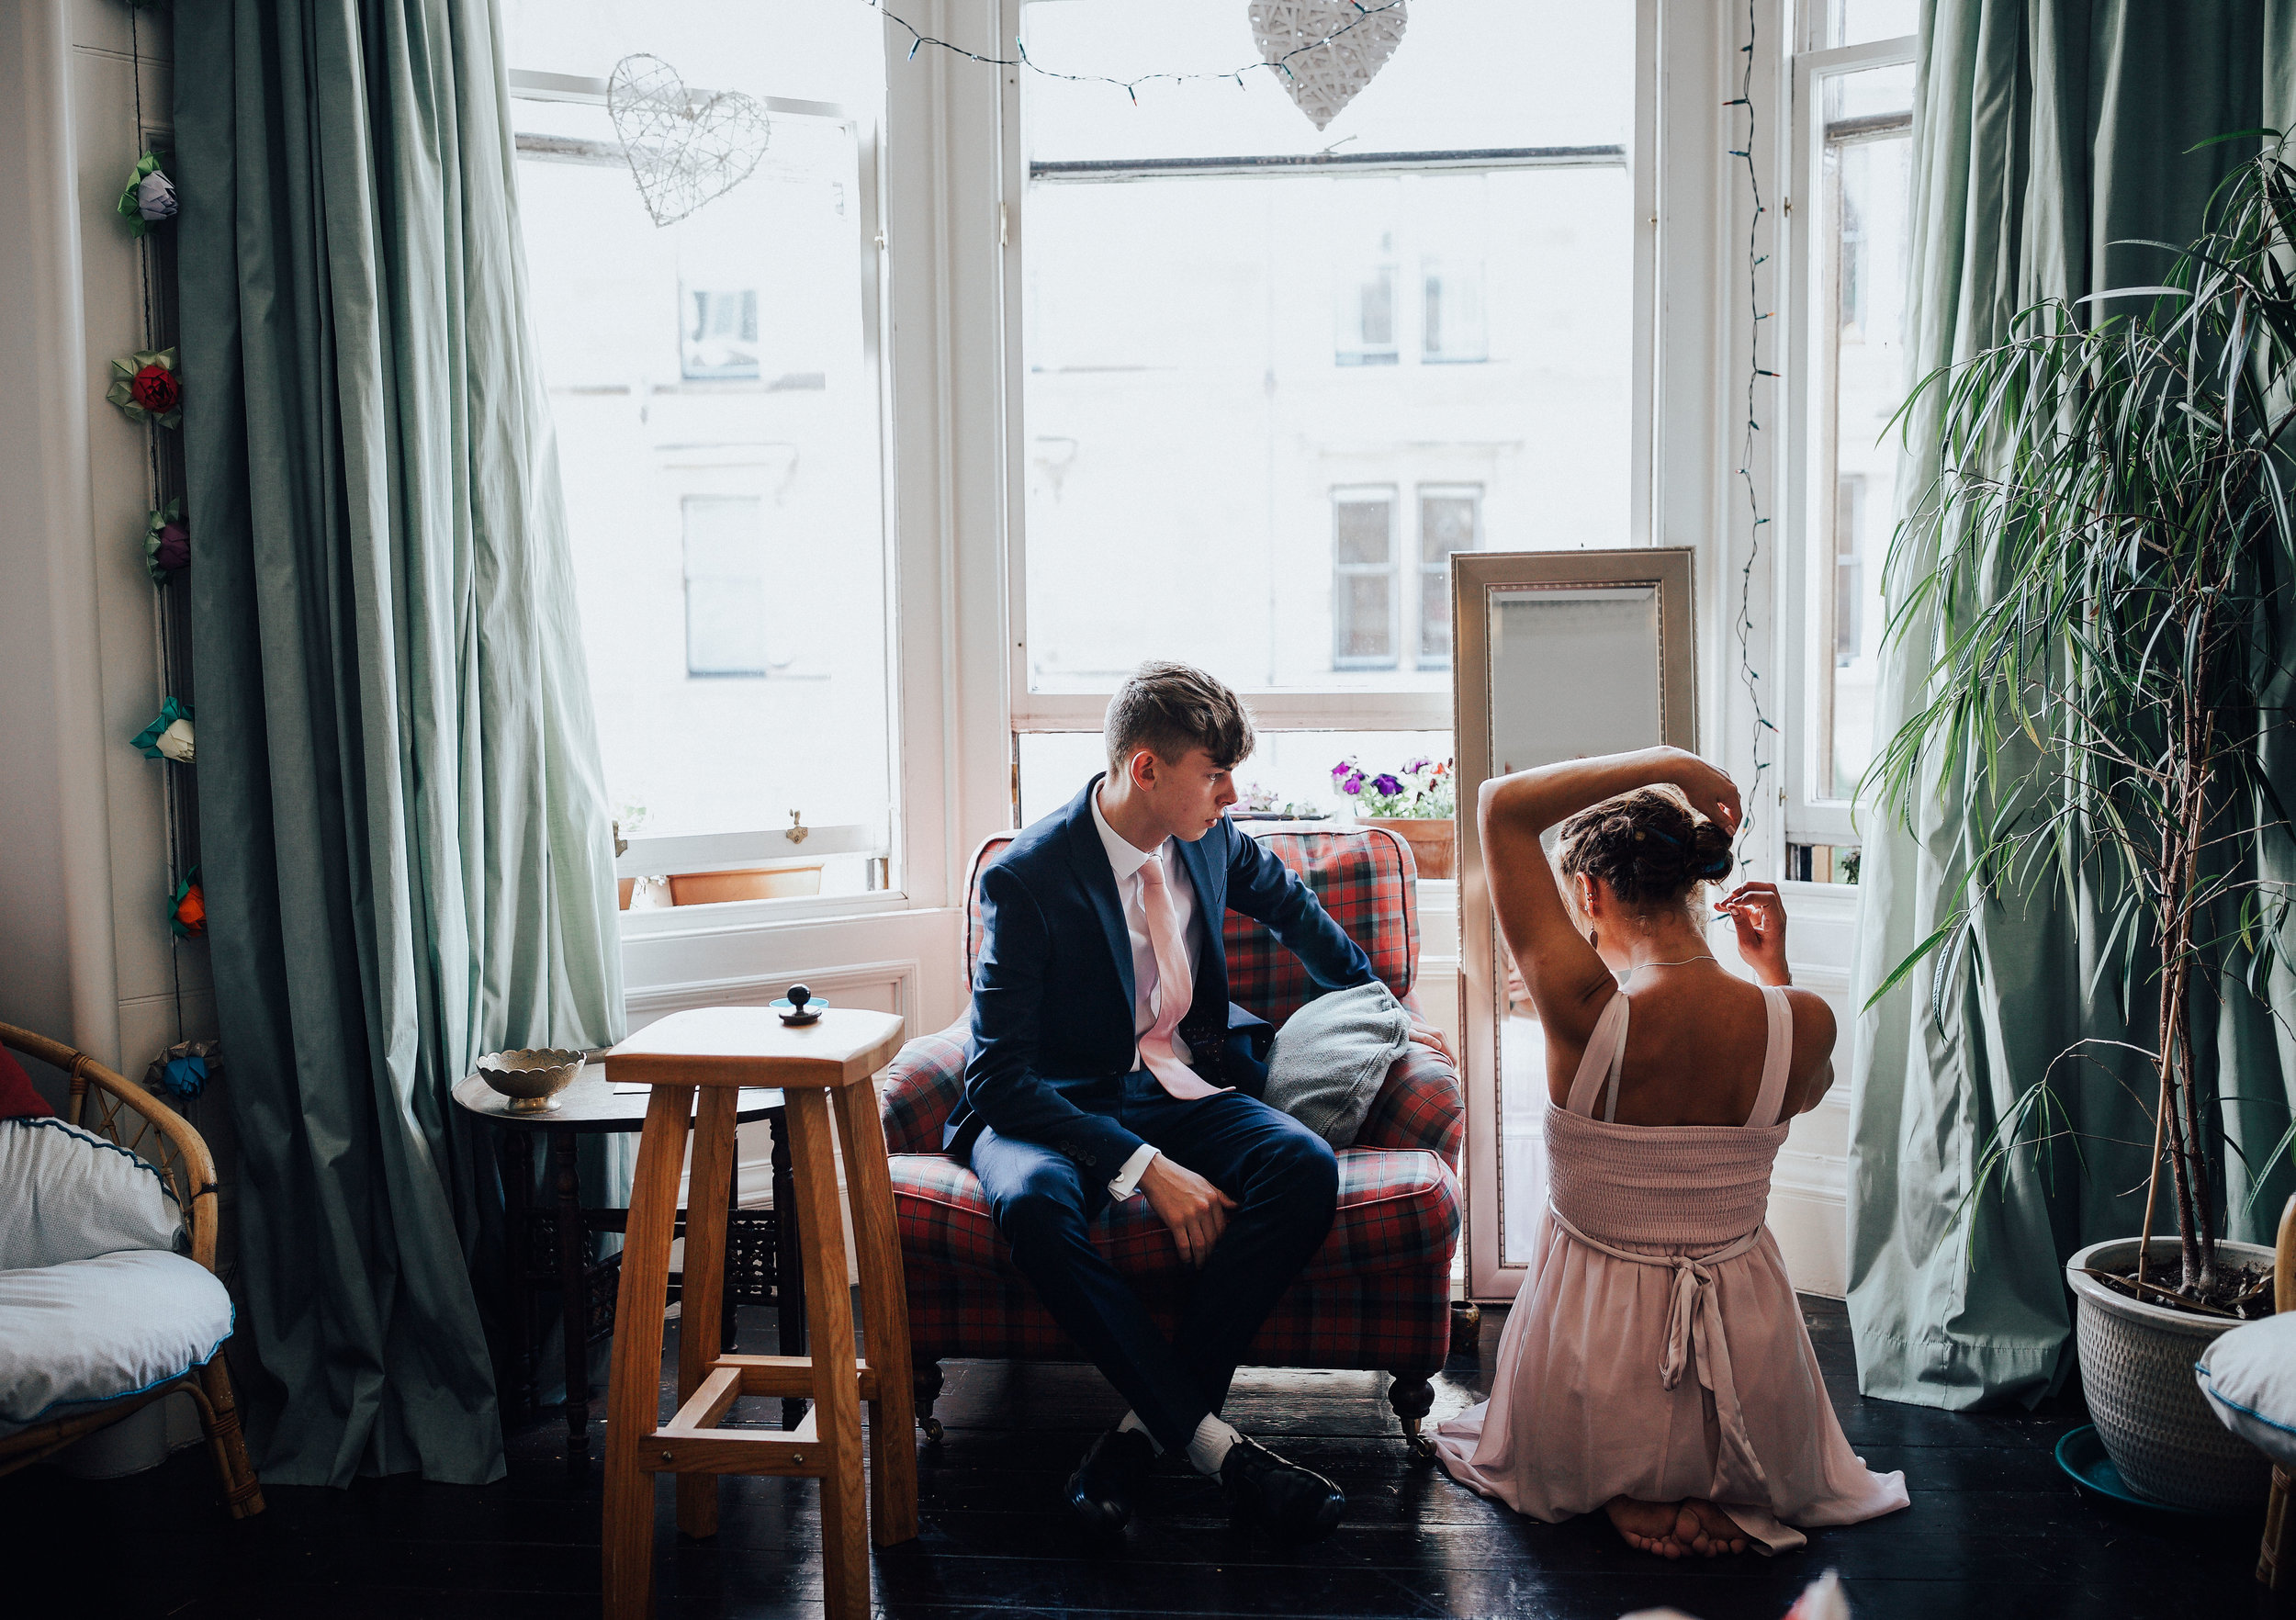 ALTERNATIVE_GLASGOW_CITY_WEDDING_PJ_PHILLIPS_PHOTOGRAPHY_WEDDING_PHOTOGRAPHY_28.jpg